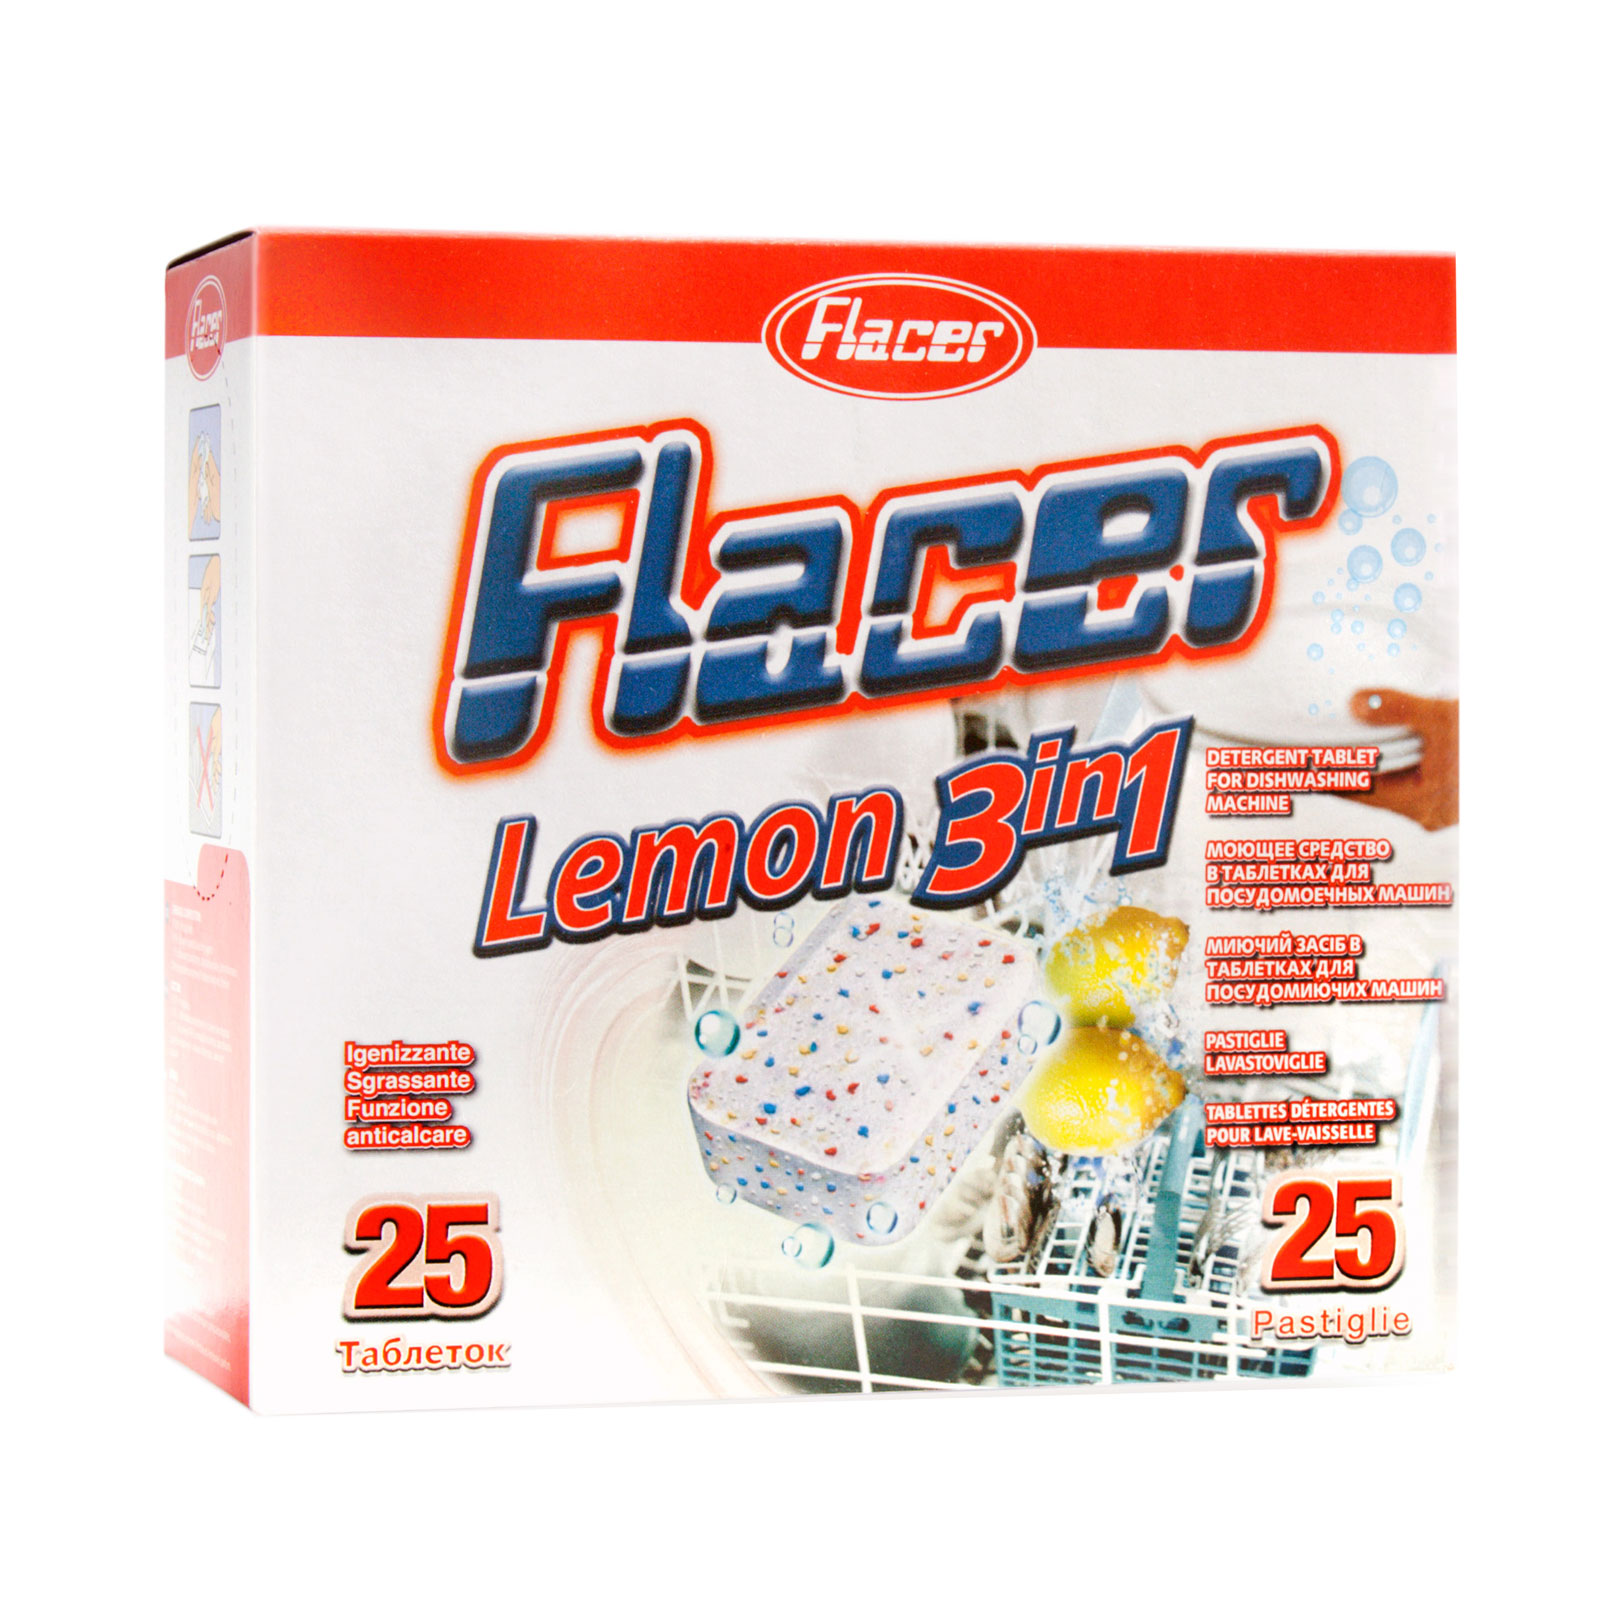 �������� Flacer 3 � 1 ��� ������������� ����� 25 ��